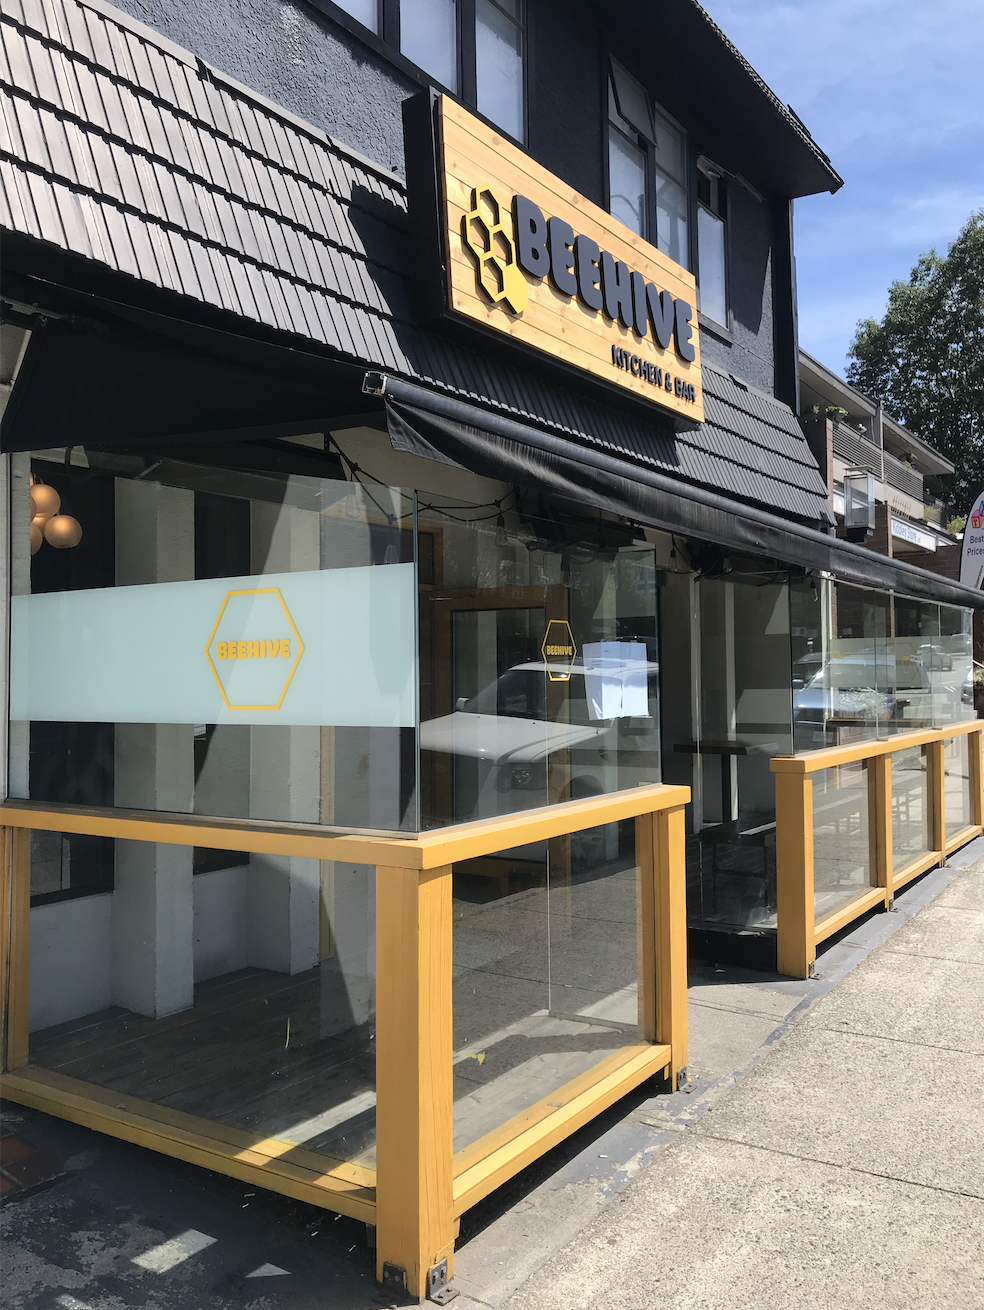 New Restaurant 'Beehive Kitchen & Bar' to Launch in Kitsilano This Summer